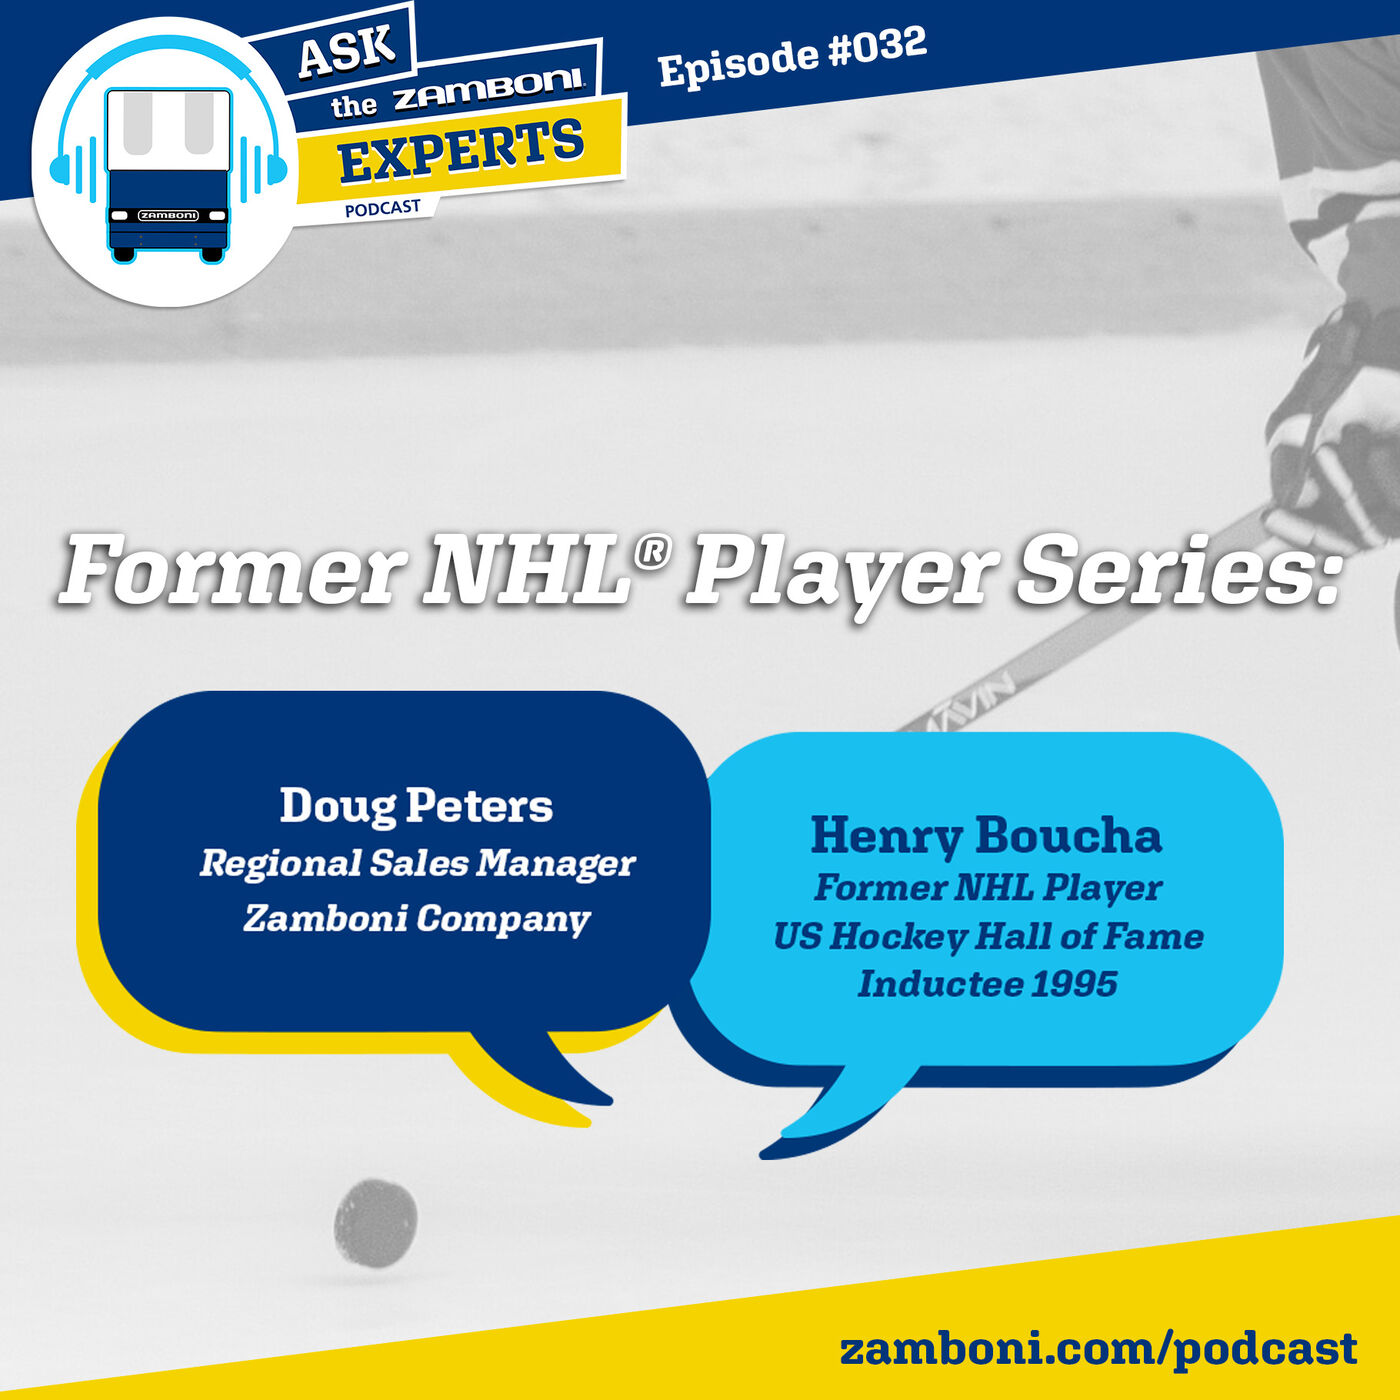 Episode #032: Former NHL® Player Henry Boucha